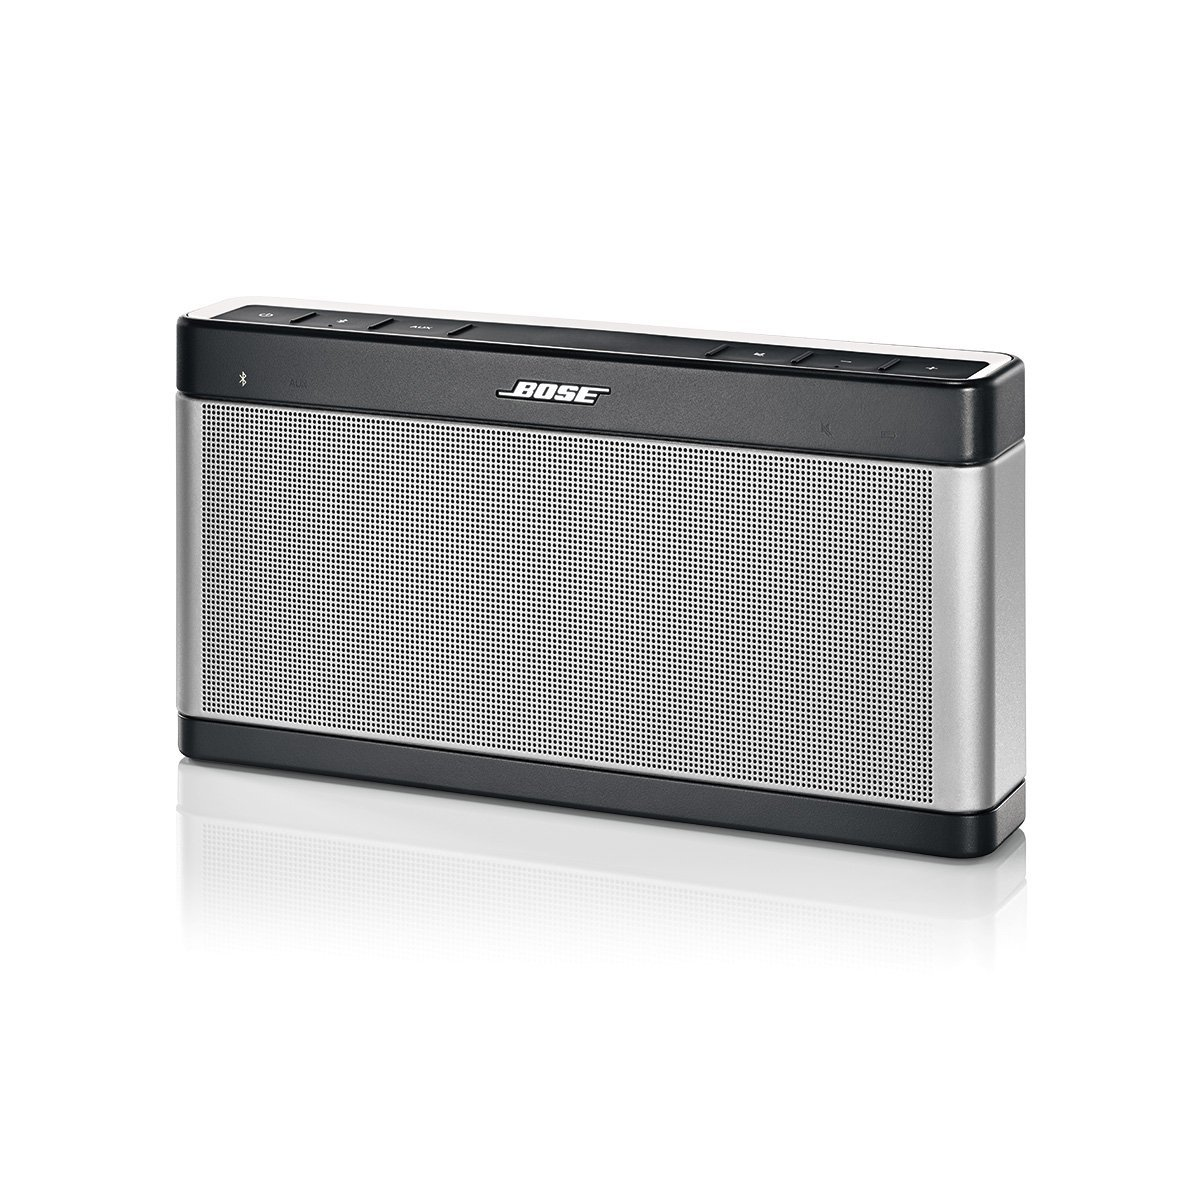 enceinte sans fil bose soundlink iii. Black Bedroom Furniture Sets. Home Design Ideas